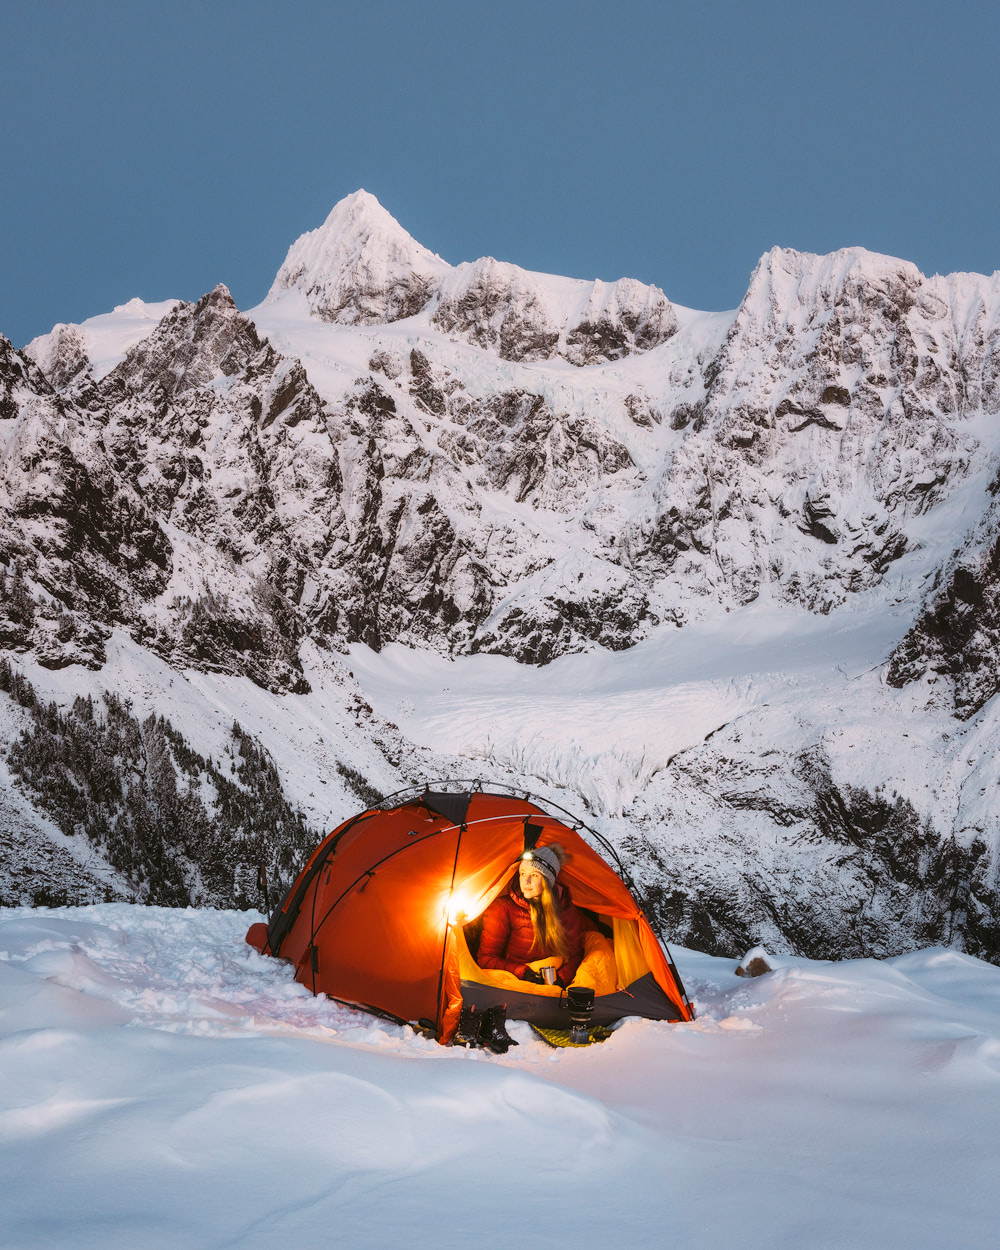 Meaningful Experiences and Eco-Friendly Gift Guide for Outdoor Lovers - Winter Camping